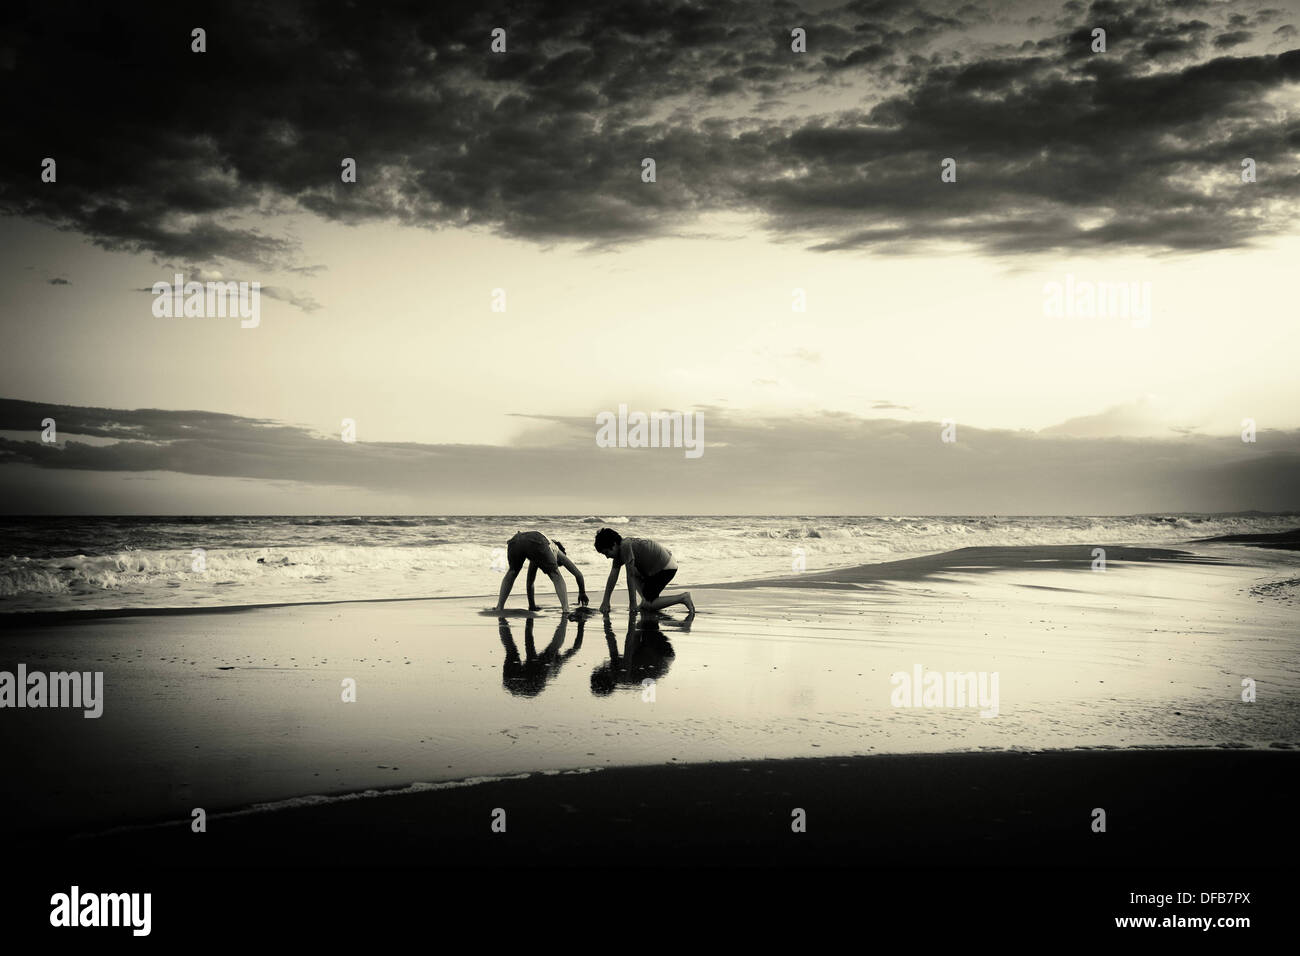 Children playing on the beach - Stock Image